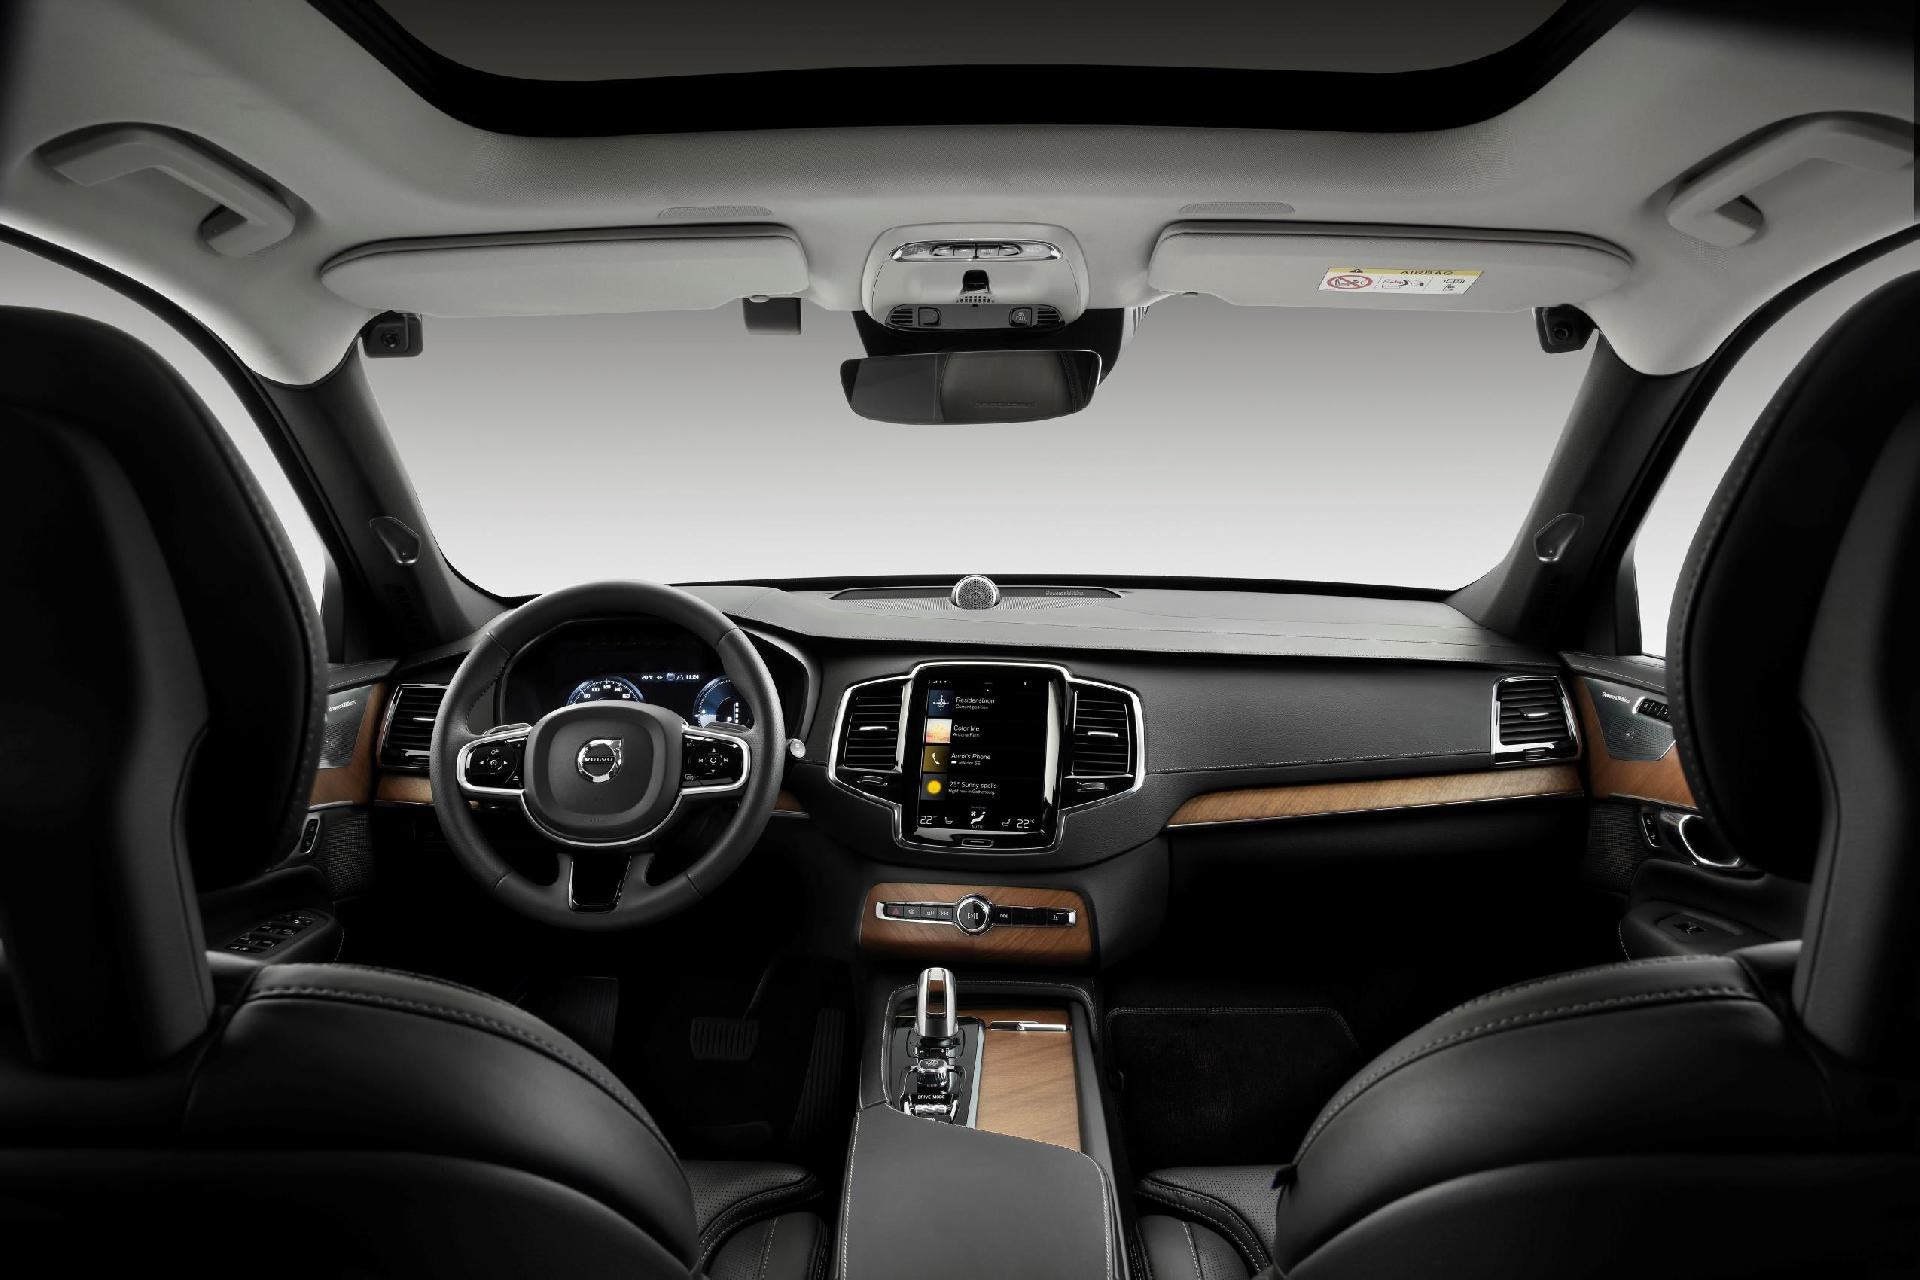 1694483 250104 Volvo Cars To Deploy In Car Cameras And Intervention Against Intoxication Lead Image